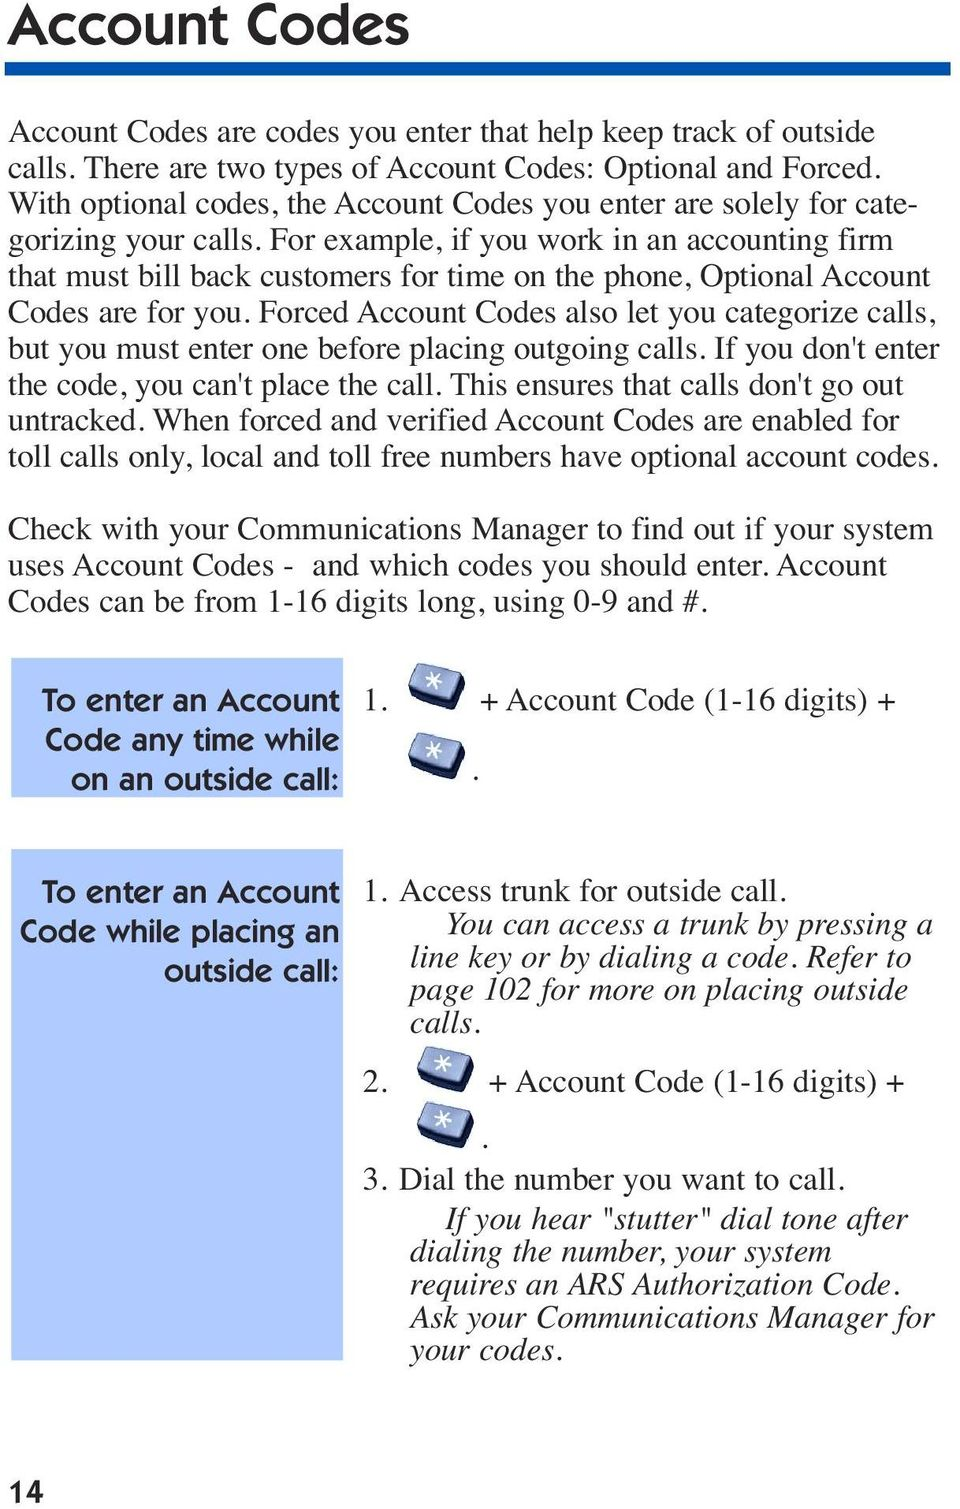 For example, if you work in an accounting firm that must bill back customers for time on the phone, Optional Account Codes are for you.